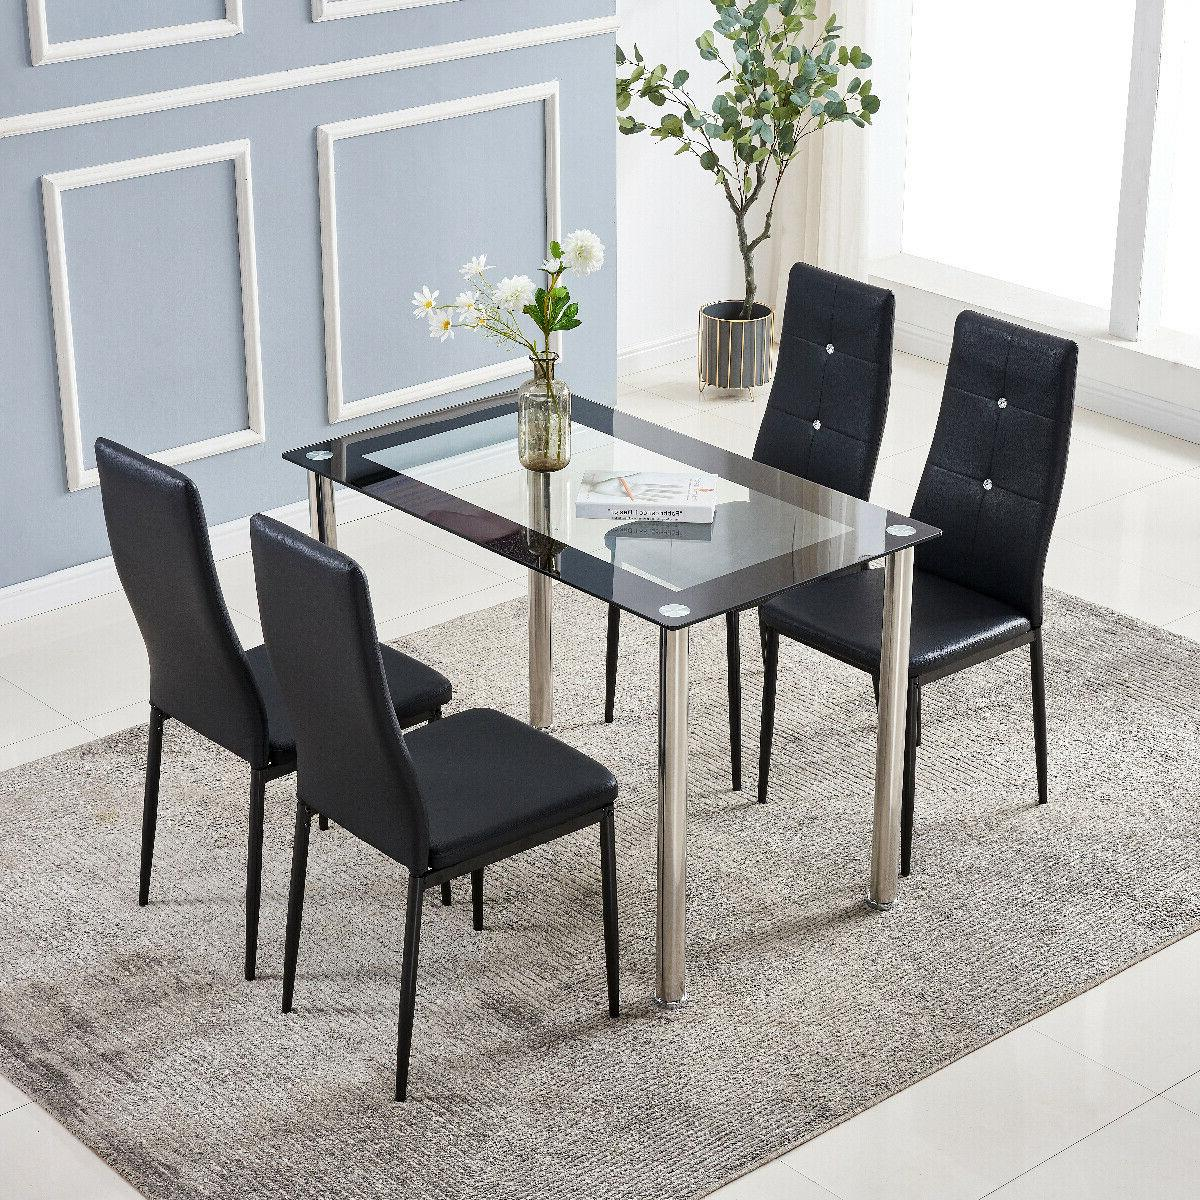 Dining Set Glass Table & PU Chairs With Diamond Button Kitch